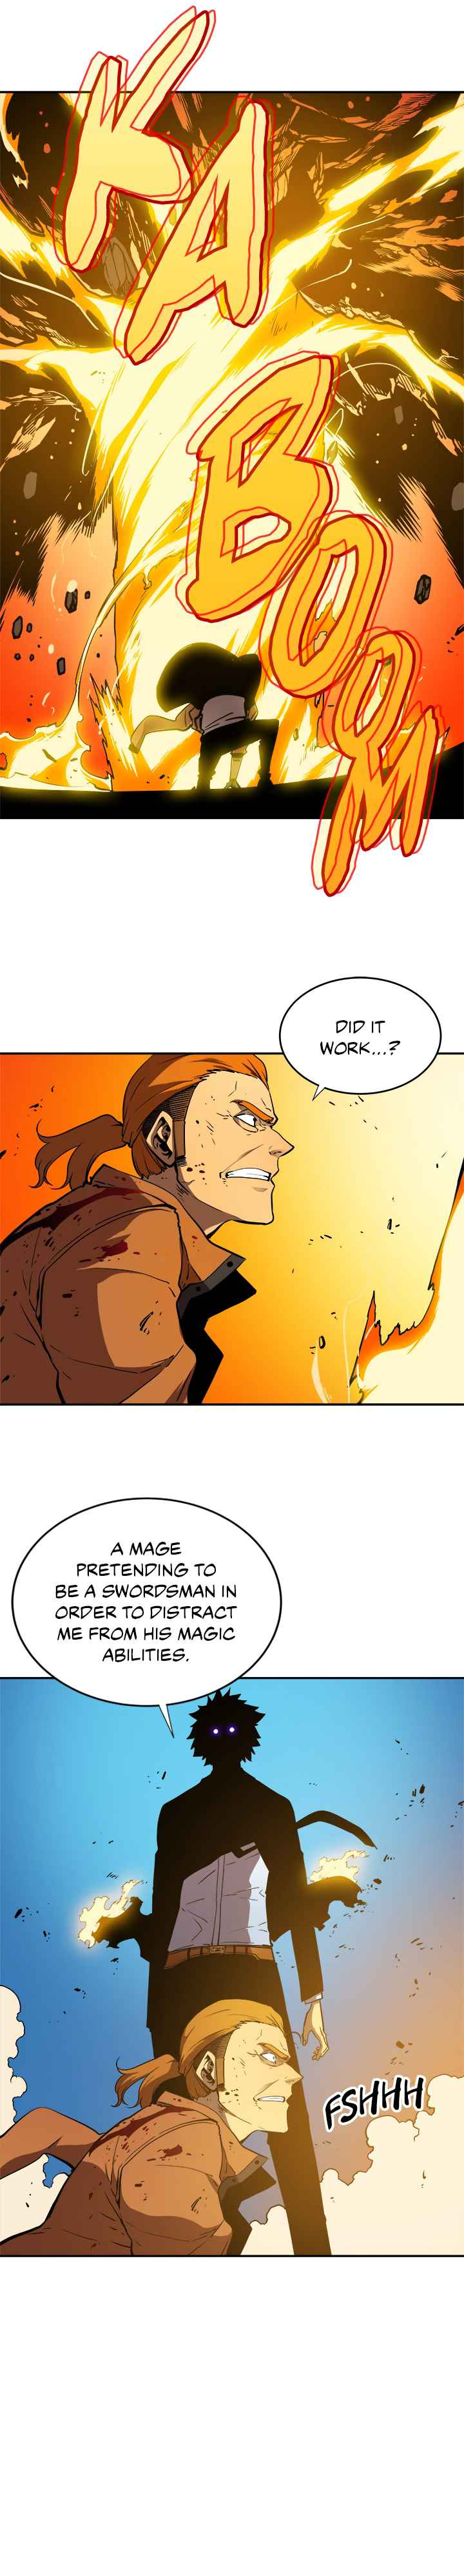 Solo Leveling Chapter 31 Page 15